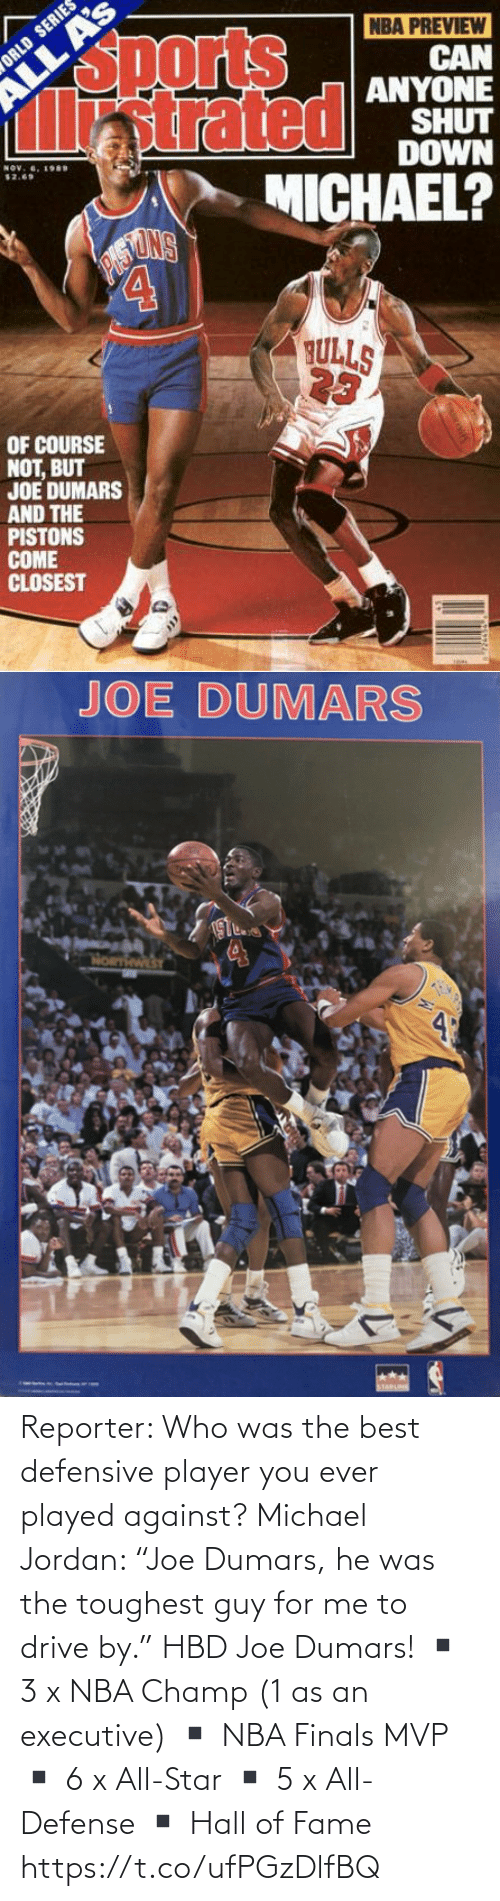 "Star: Reporter: Who was the best defensive player you ever played against?  Michael Jordan: ""Joe Dumars, he was the toughest guy for me to drive by.""  HBD Joe Dumars!  ▪️ 3 x NBA Champ (1 as an executive) ▪️ NBA Finals MVP ▪️ 6 x All-Star ▪️ 5 x All-Defense ▪️ Hall of Fame https://t.co/ufPGzDlfBQ"